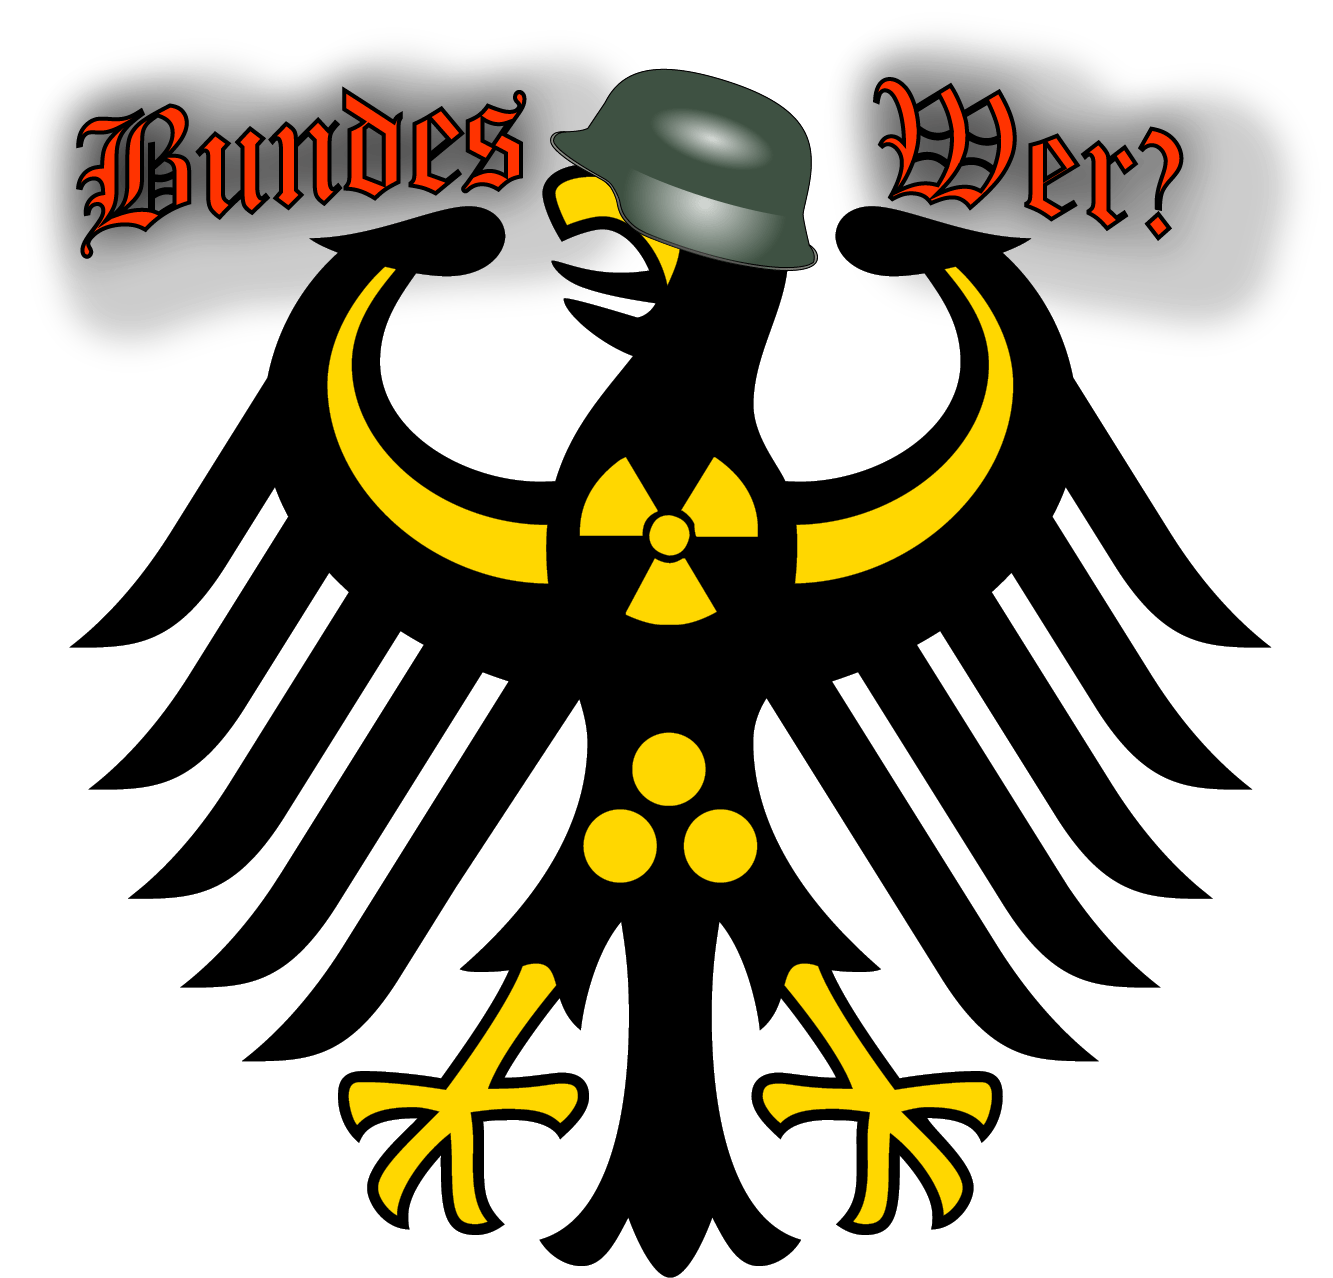 Kampf Bundesadler new german power